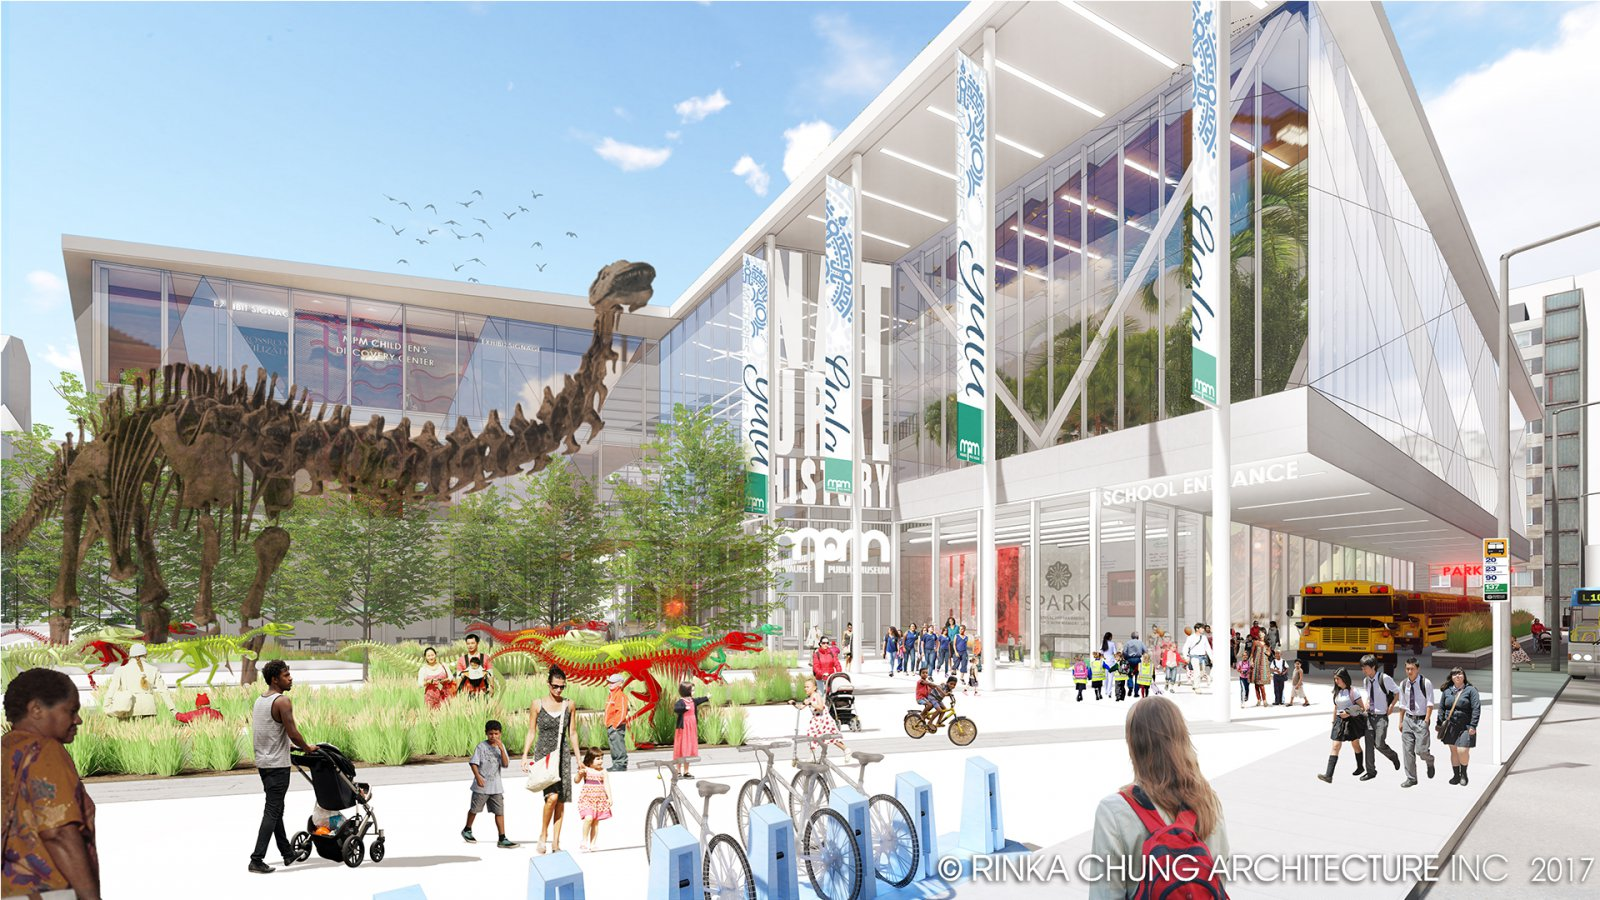 Conceptual design for the Milwaukee Public Museum back plaza